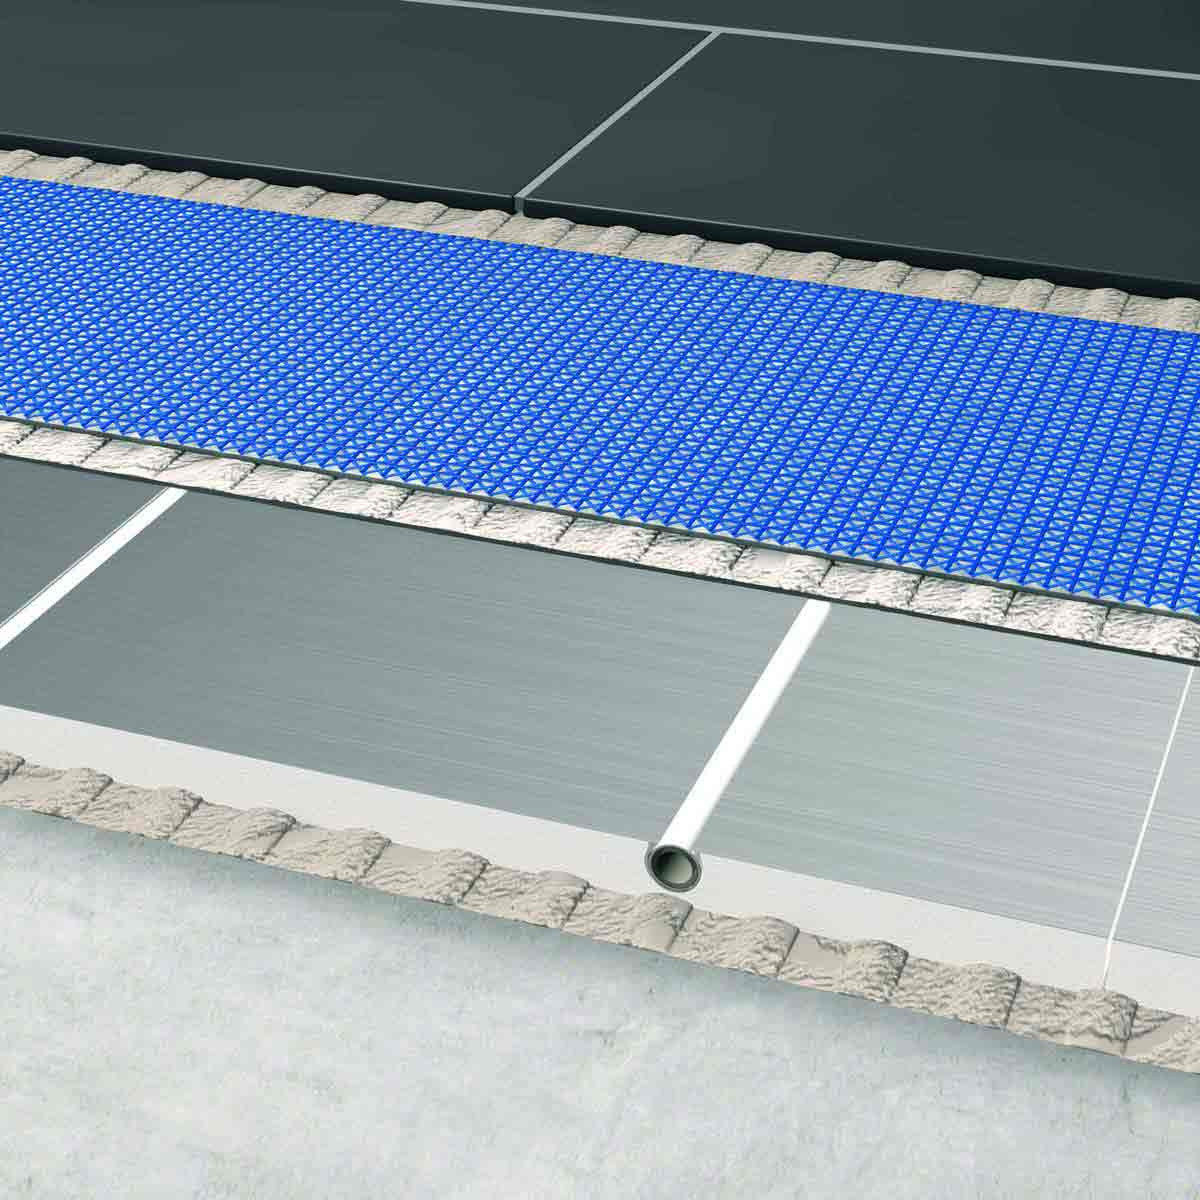 Blanke Permat Underlayment Above Piping